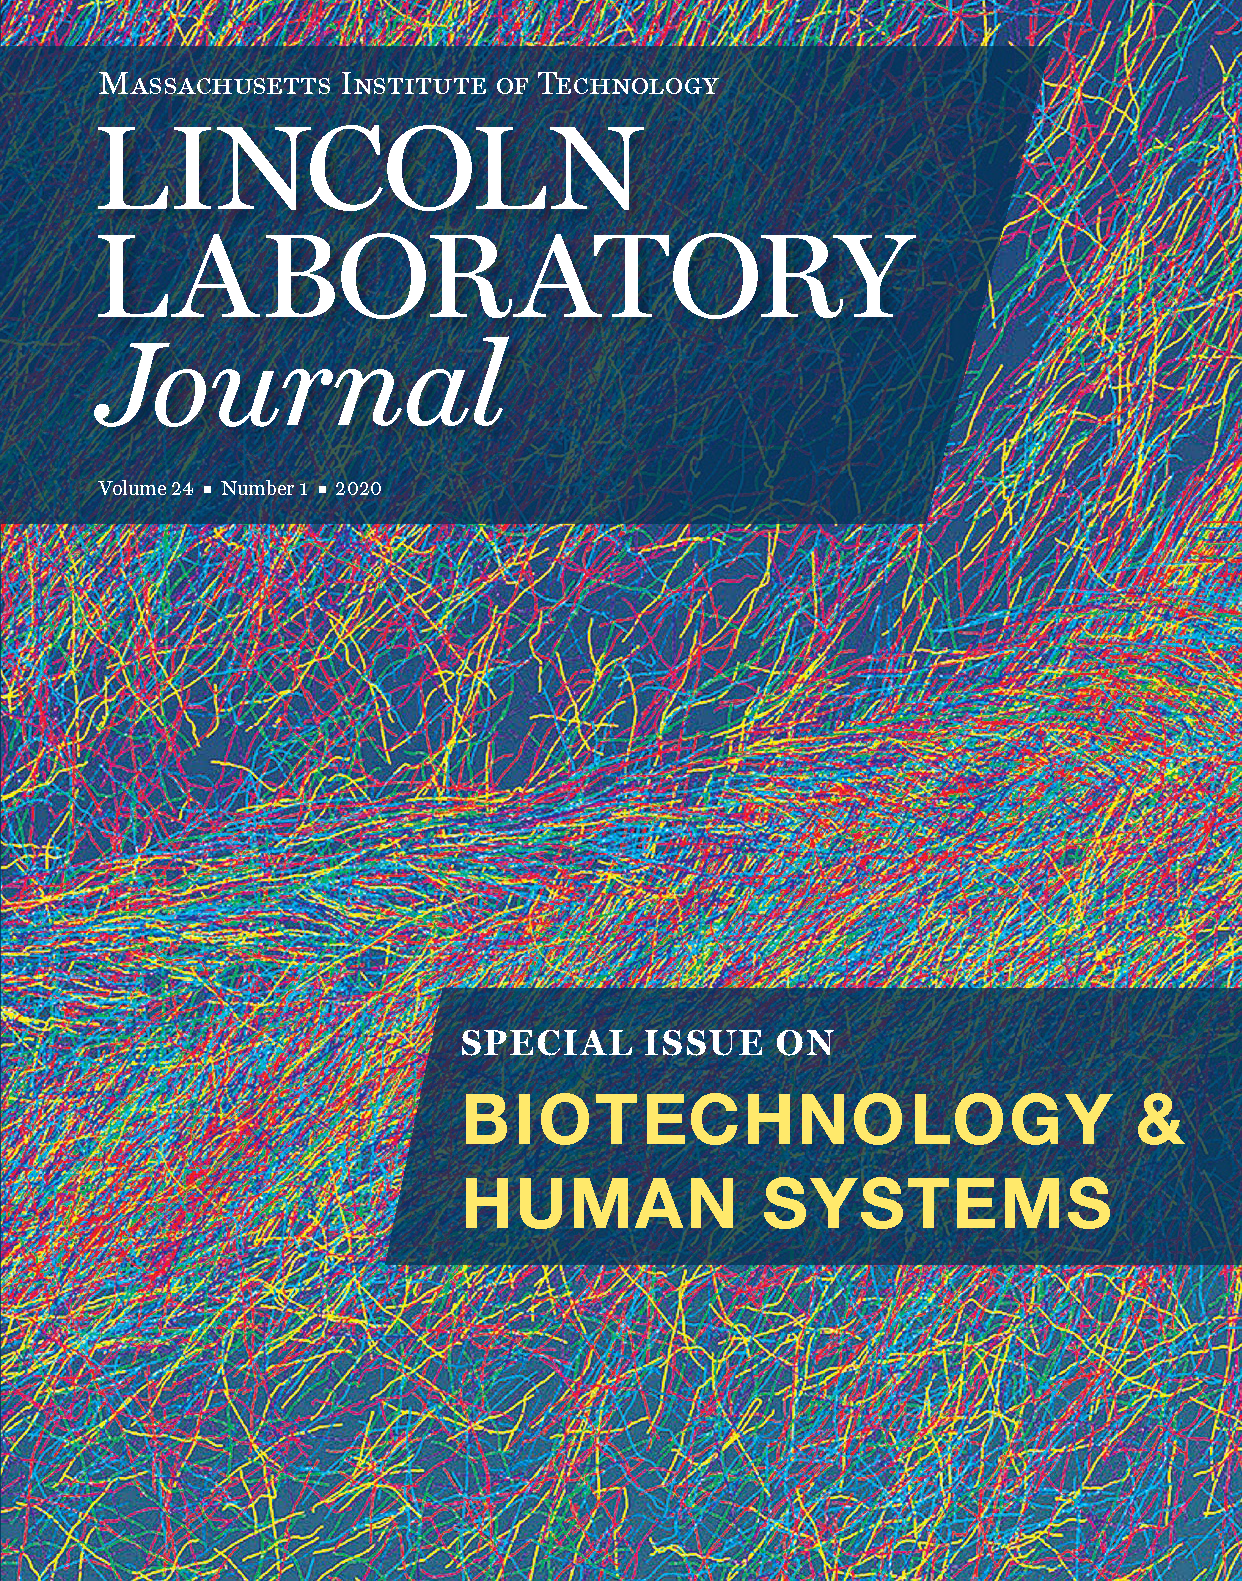 Lincoln Laboratory Volume 24 Number 1 Cover